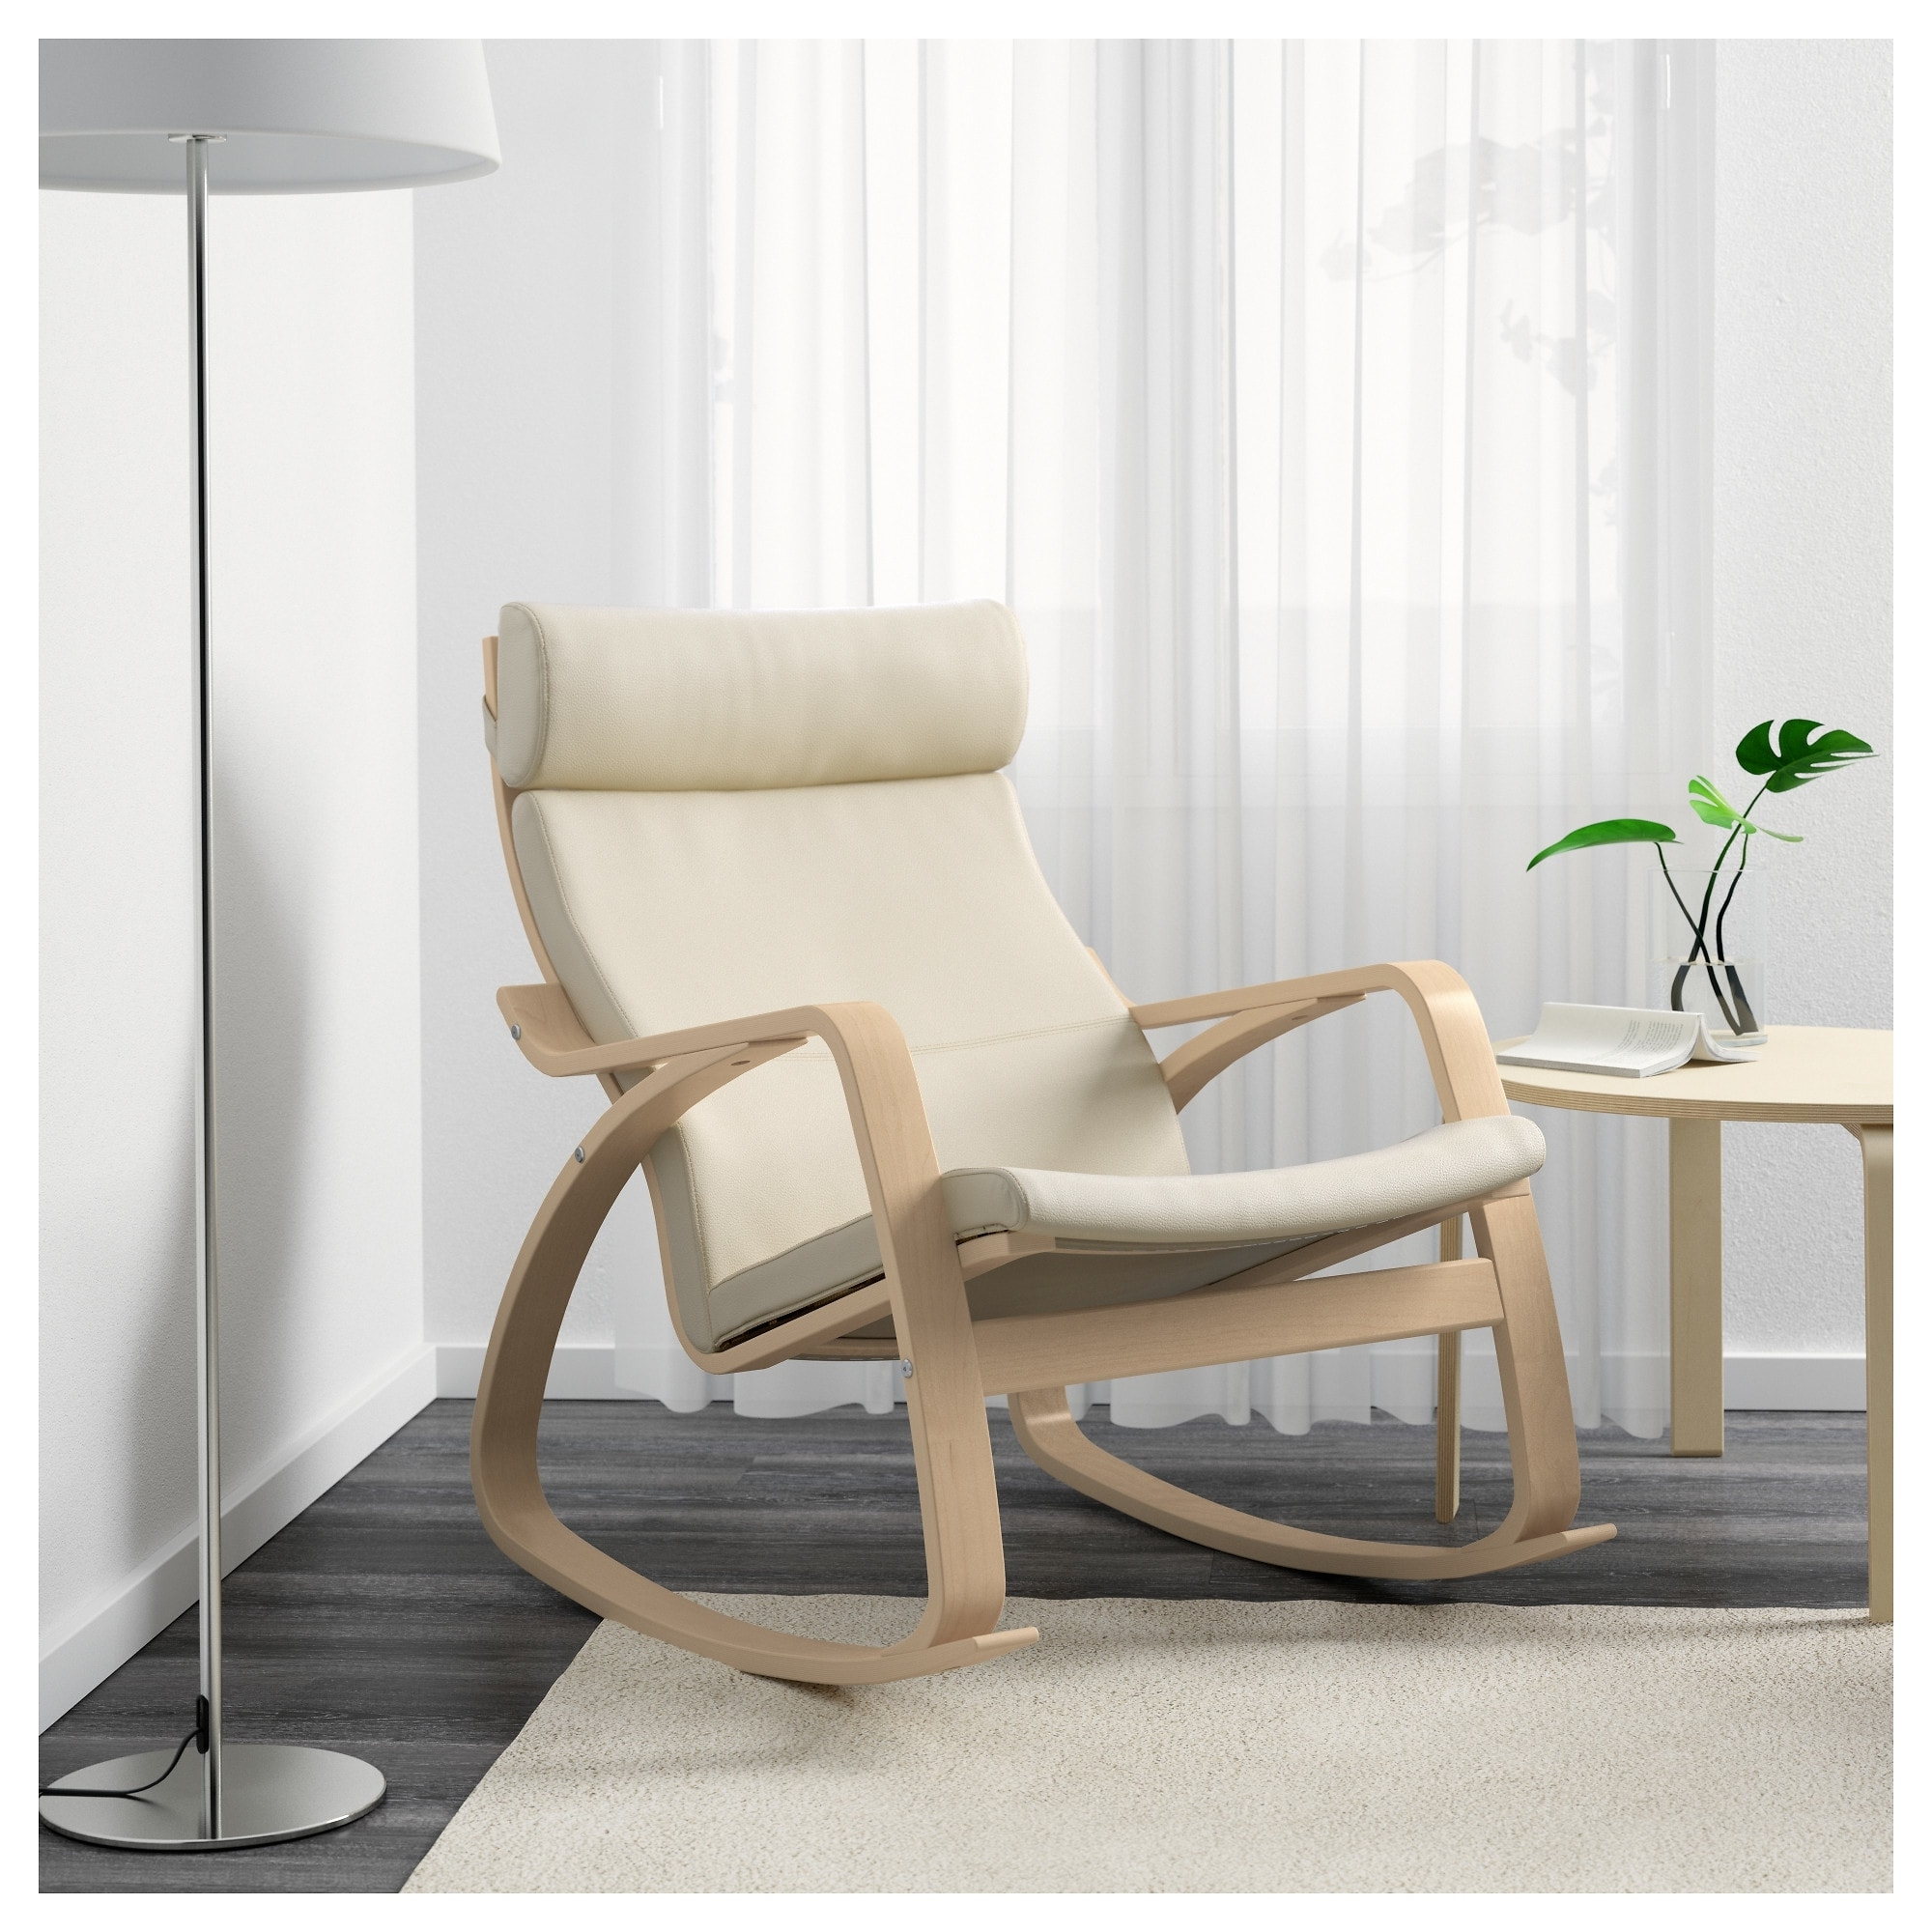 Poäng Rocking Chair Birch Veneer/glose Eggshell – Ikea With Regard To Favorite Rocking Chairs For Adults (View 6 of 15)